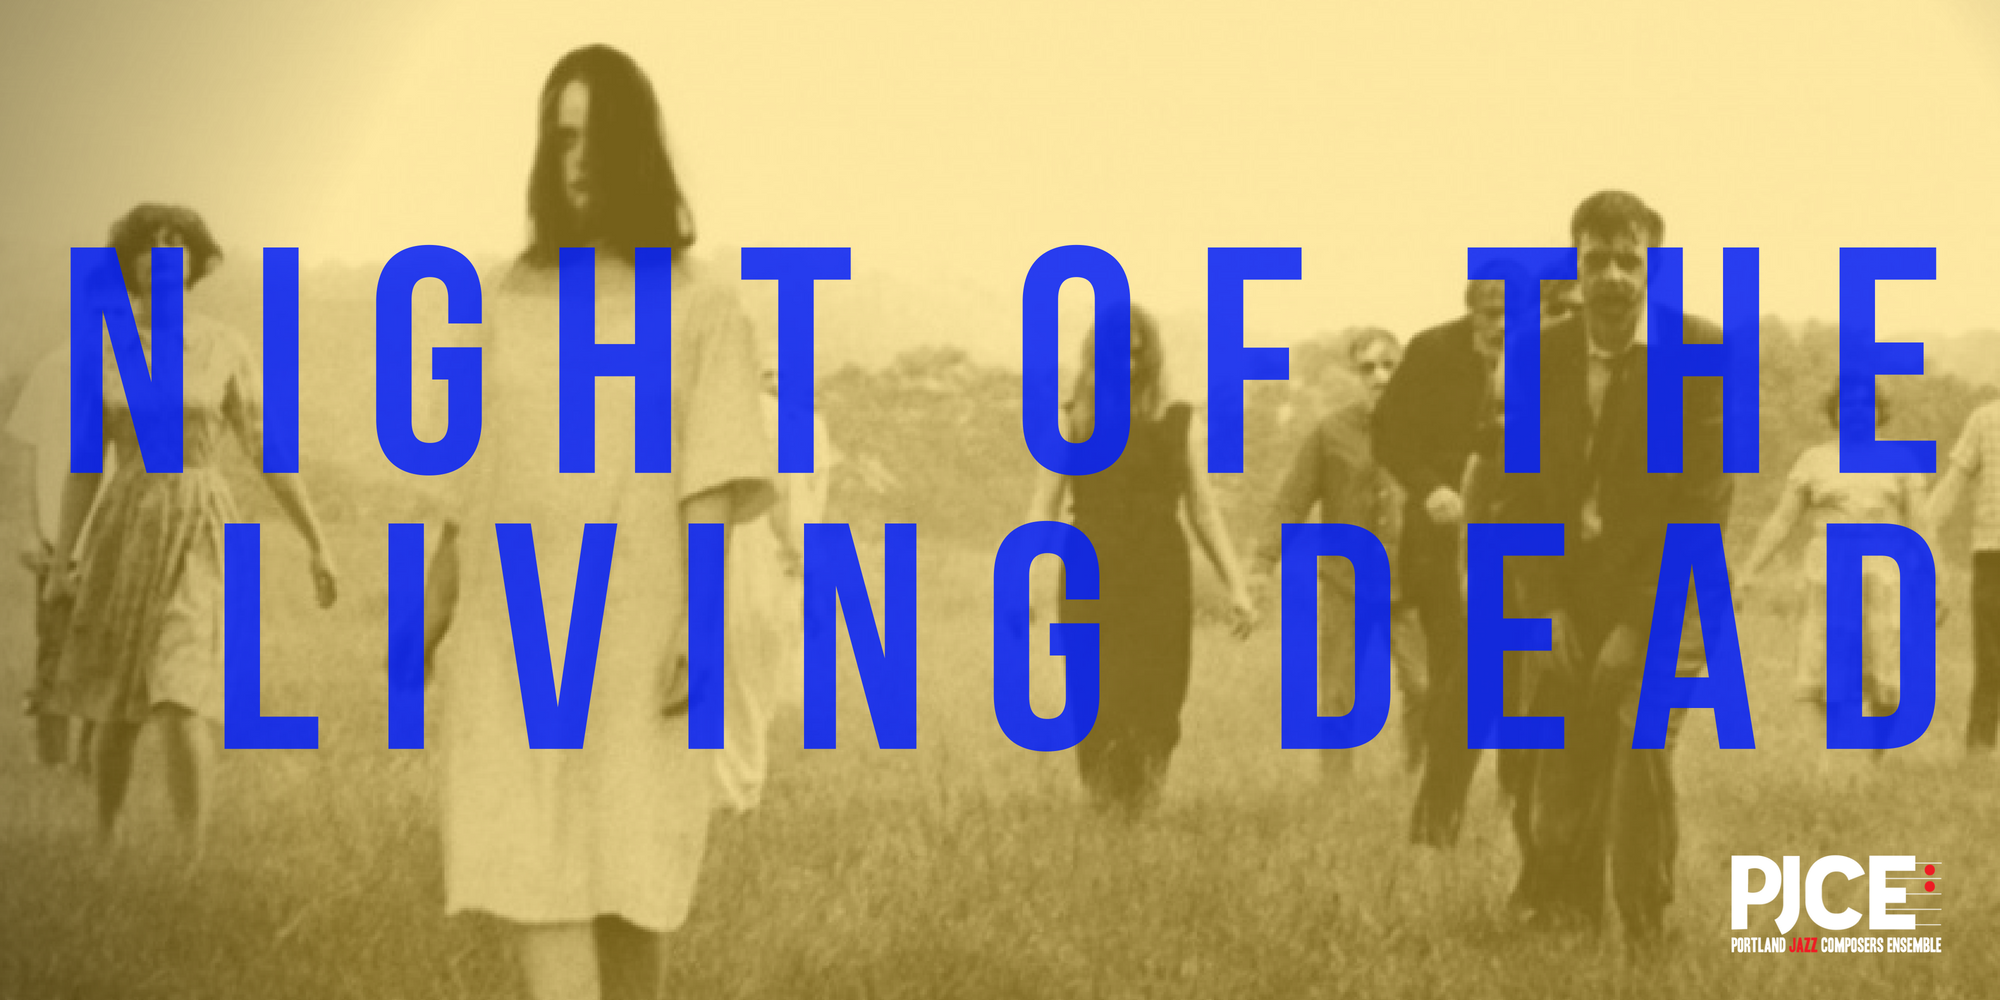 portand-jazz-composers-ensemble-night-of-the-living-dead-banner.png